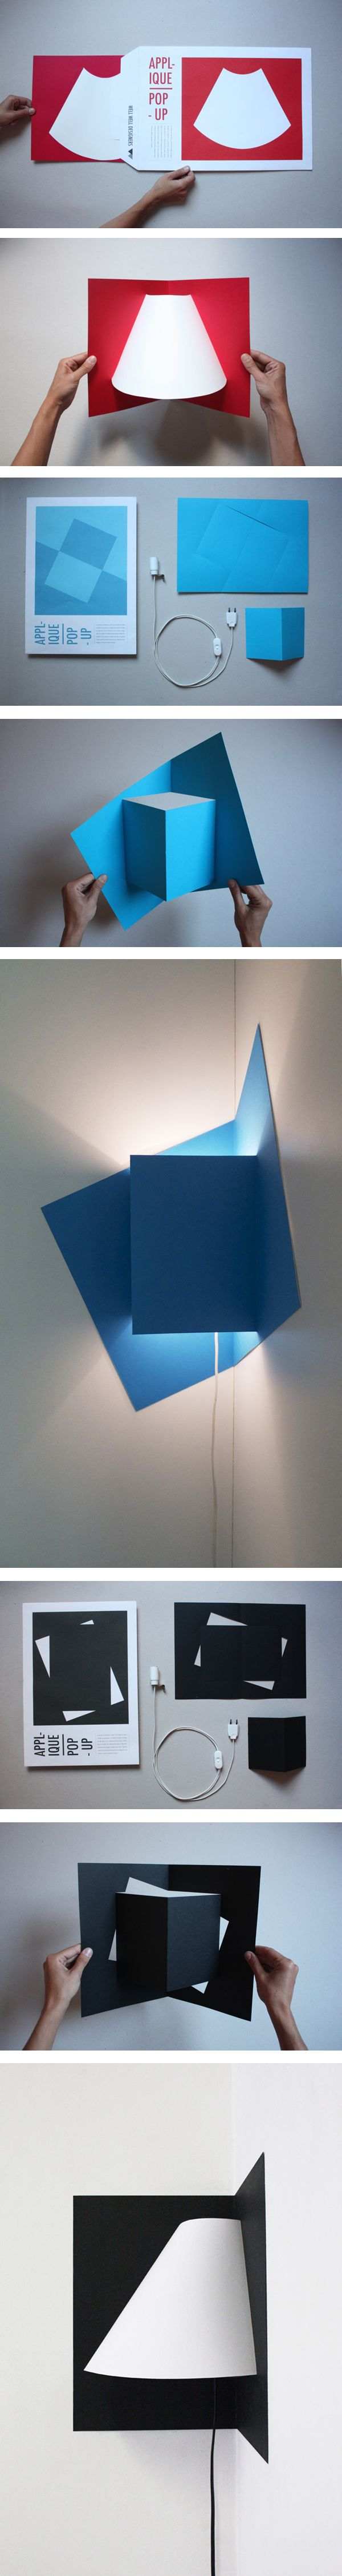 POP UP corner light by Well Well Designers.